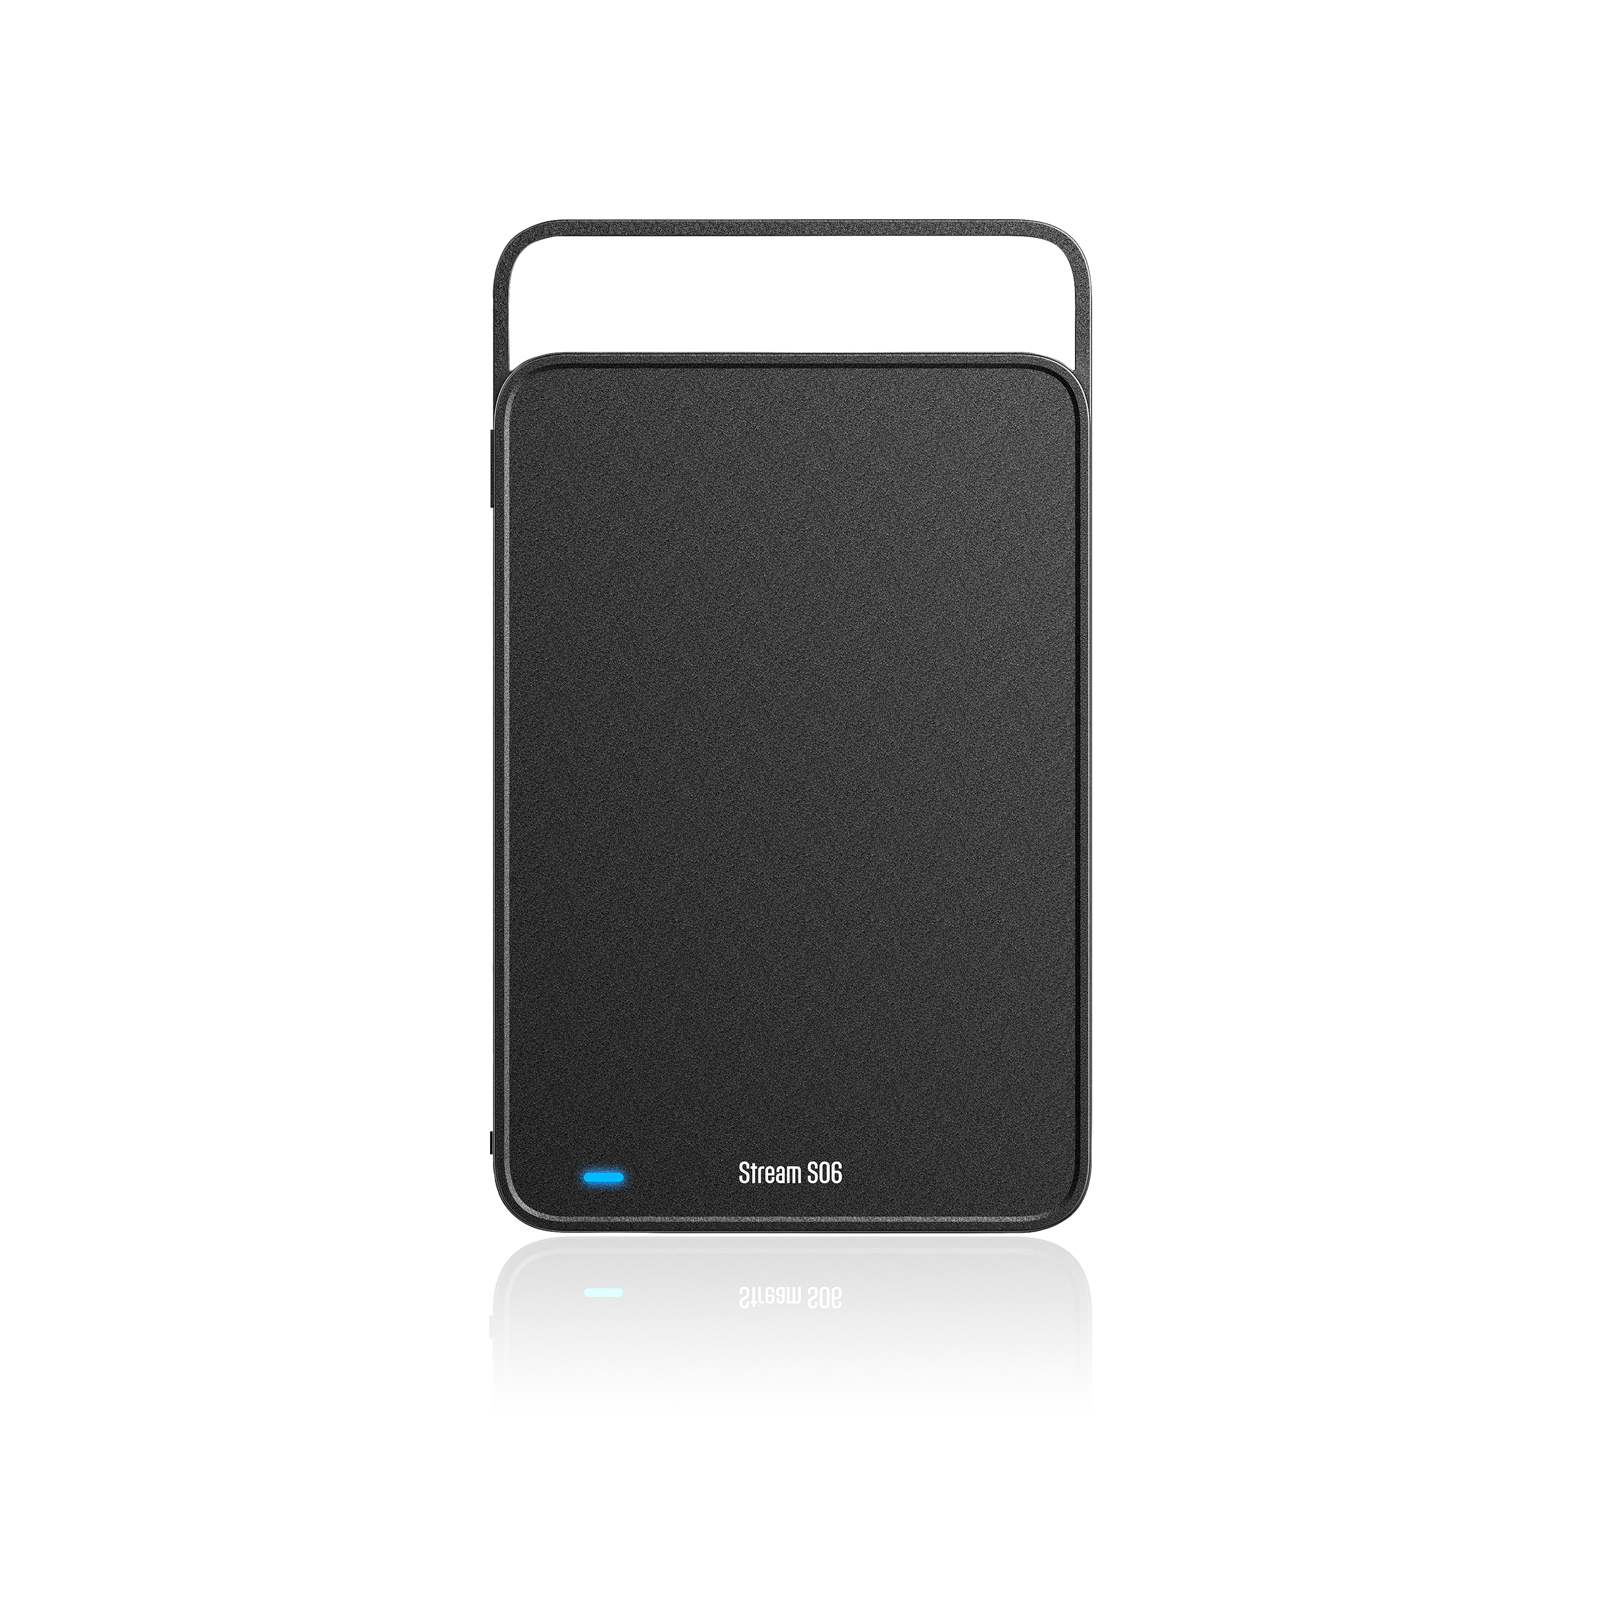 هارد اكسترنال - External H.D  -SILICON POWER Stream S06-USB 3.0-3TB